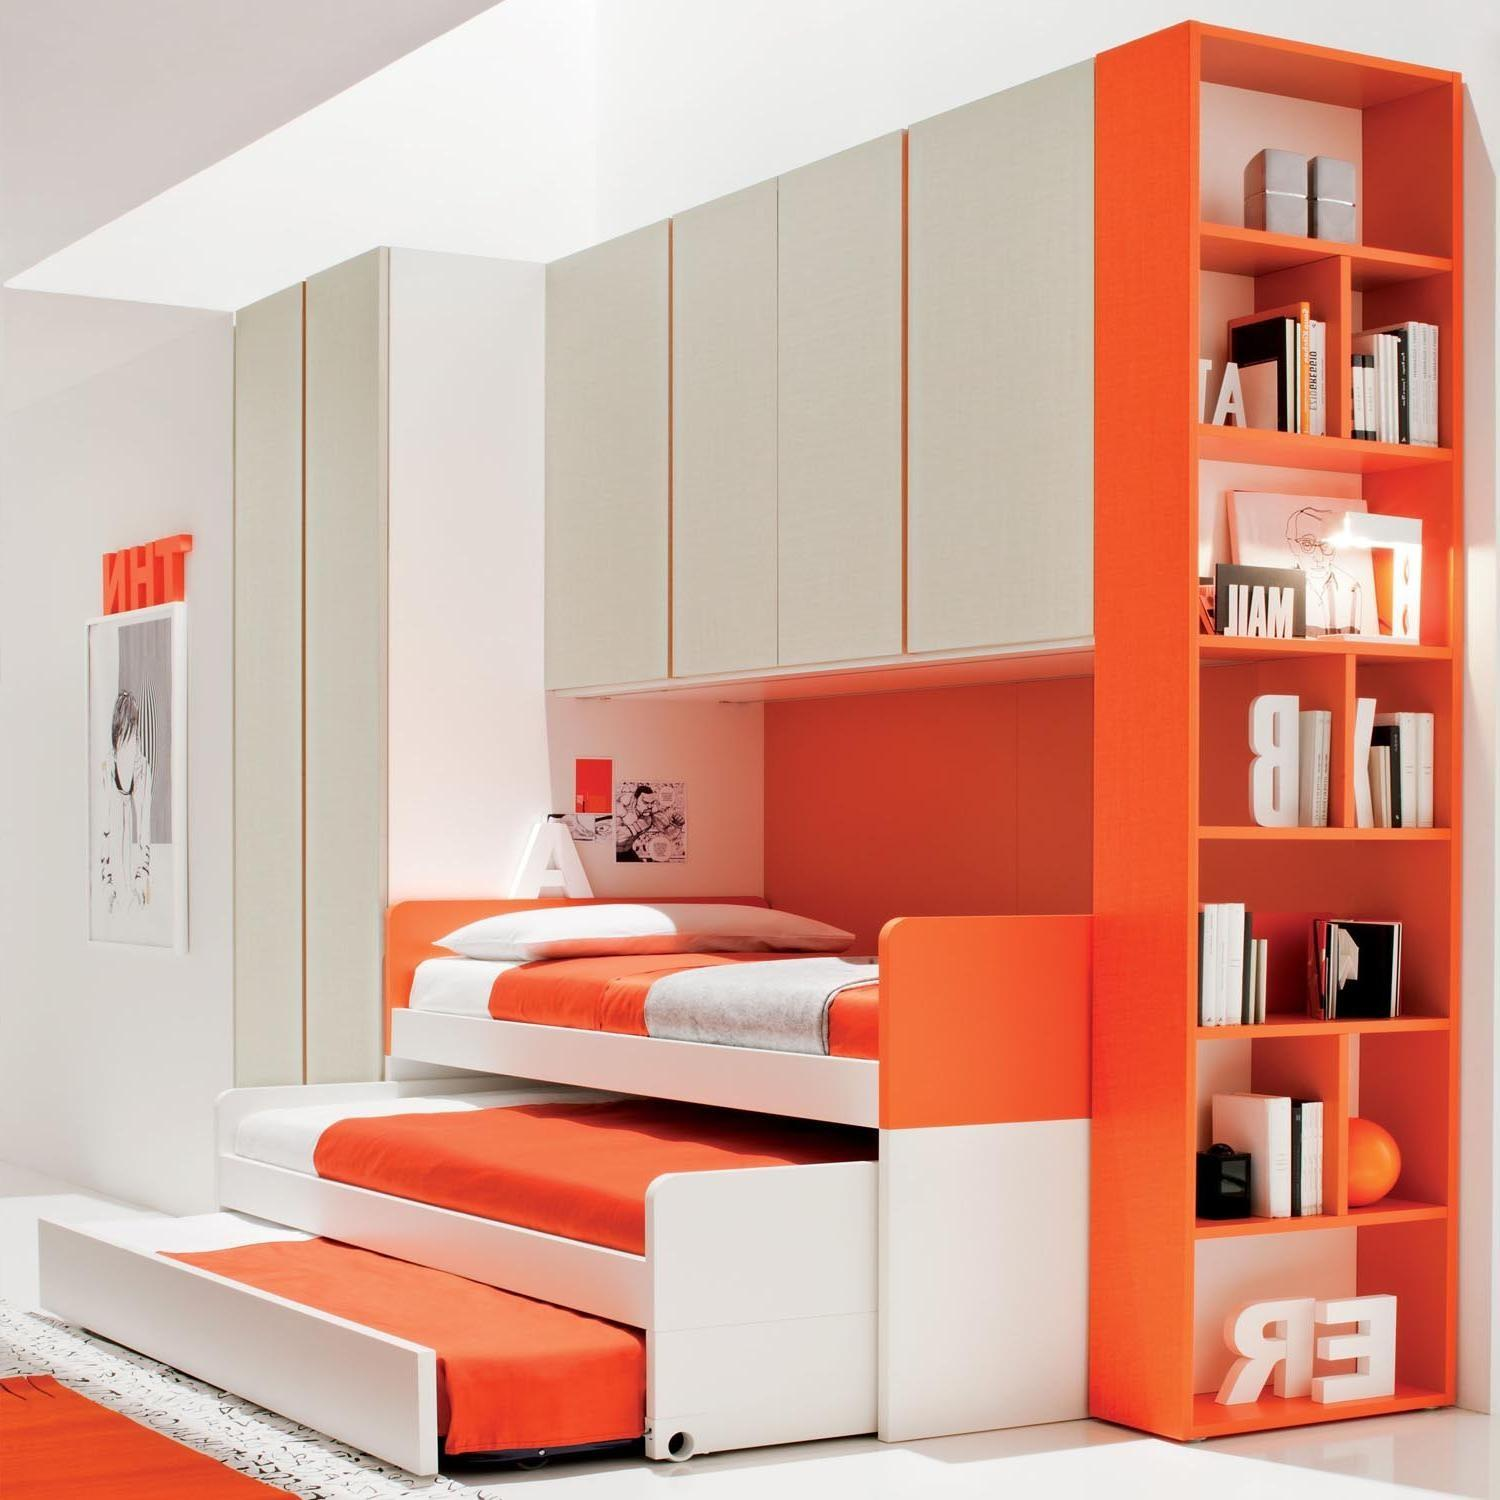 Different Types Of Kids Bedroom Furniture Decorating Trends That Are Simple Yet Pleasurable Incredible Pictures Decoratorist